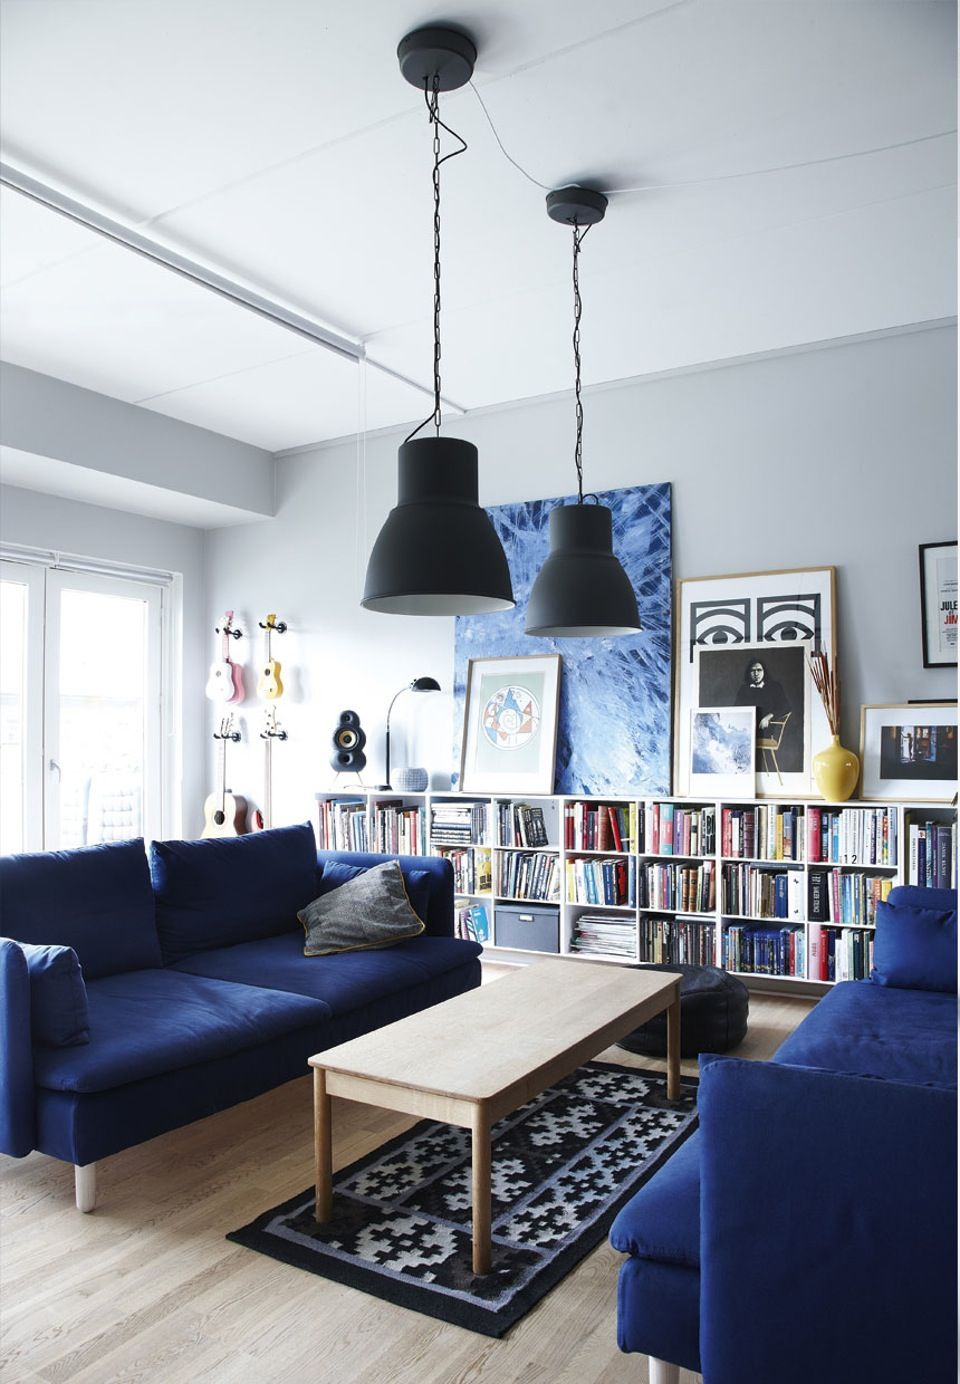 Alle Dinge zu Hause: 47 DIY Home Decor auf A Budget Apartment Ideas. #homedecorideas …